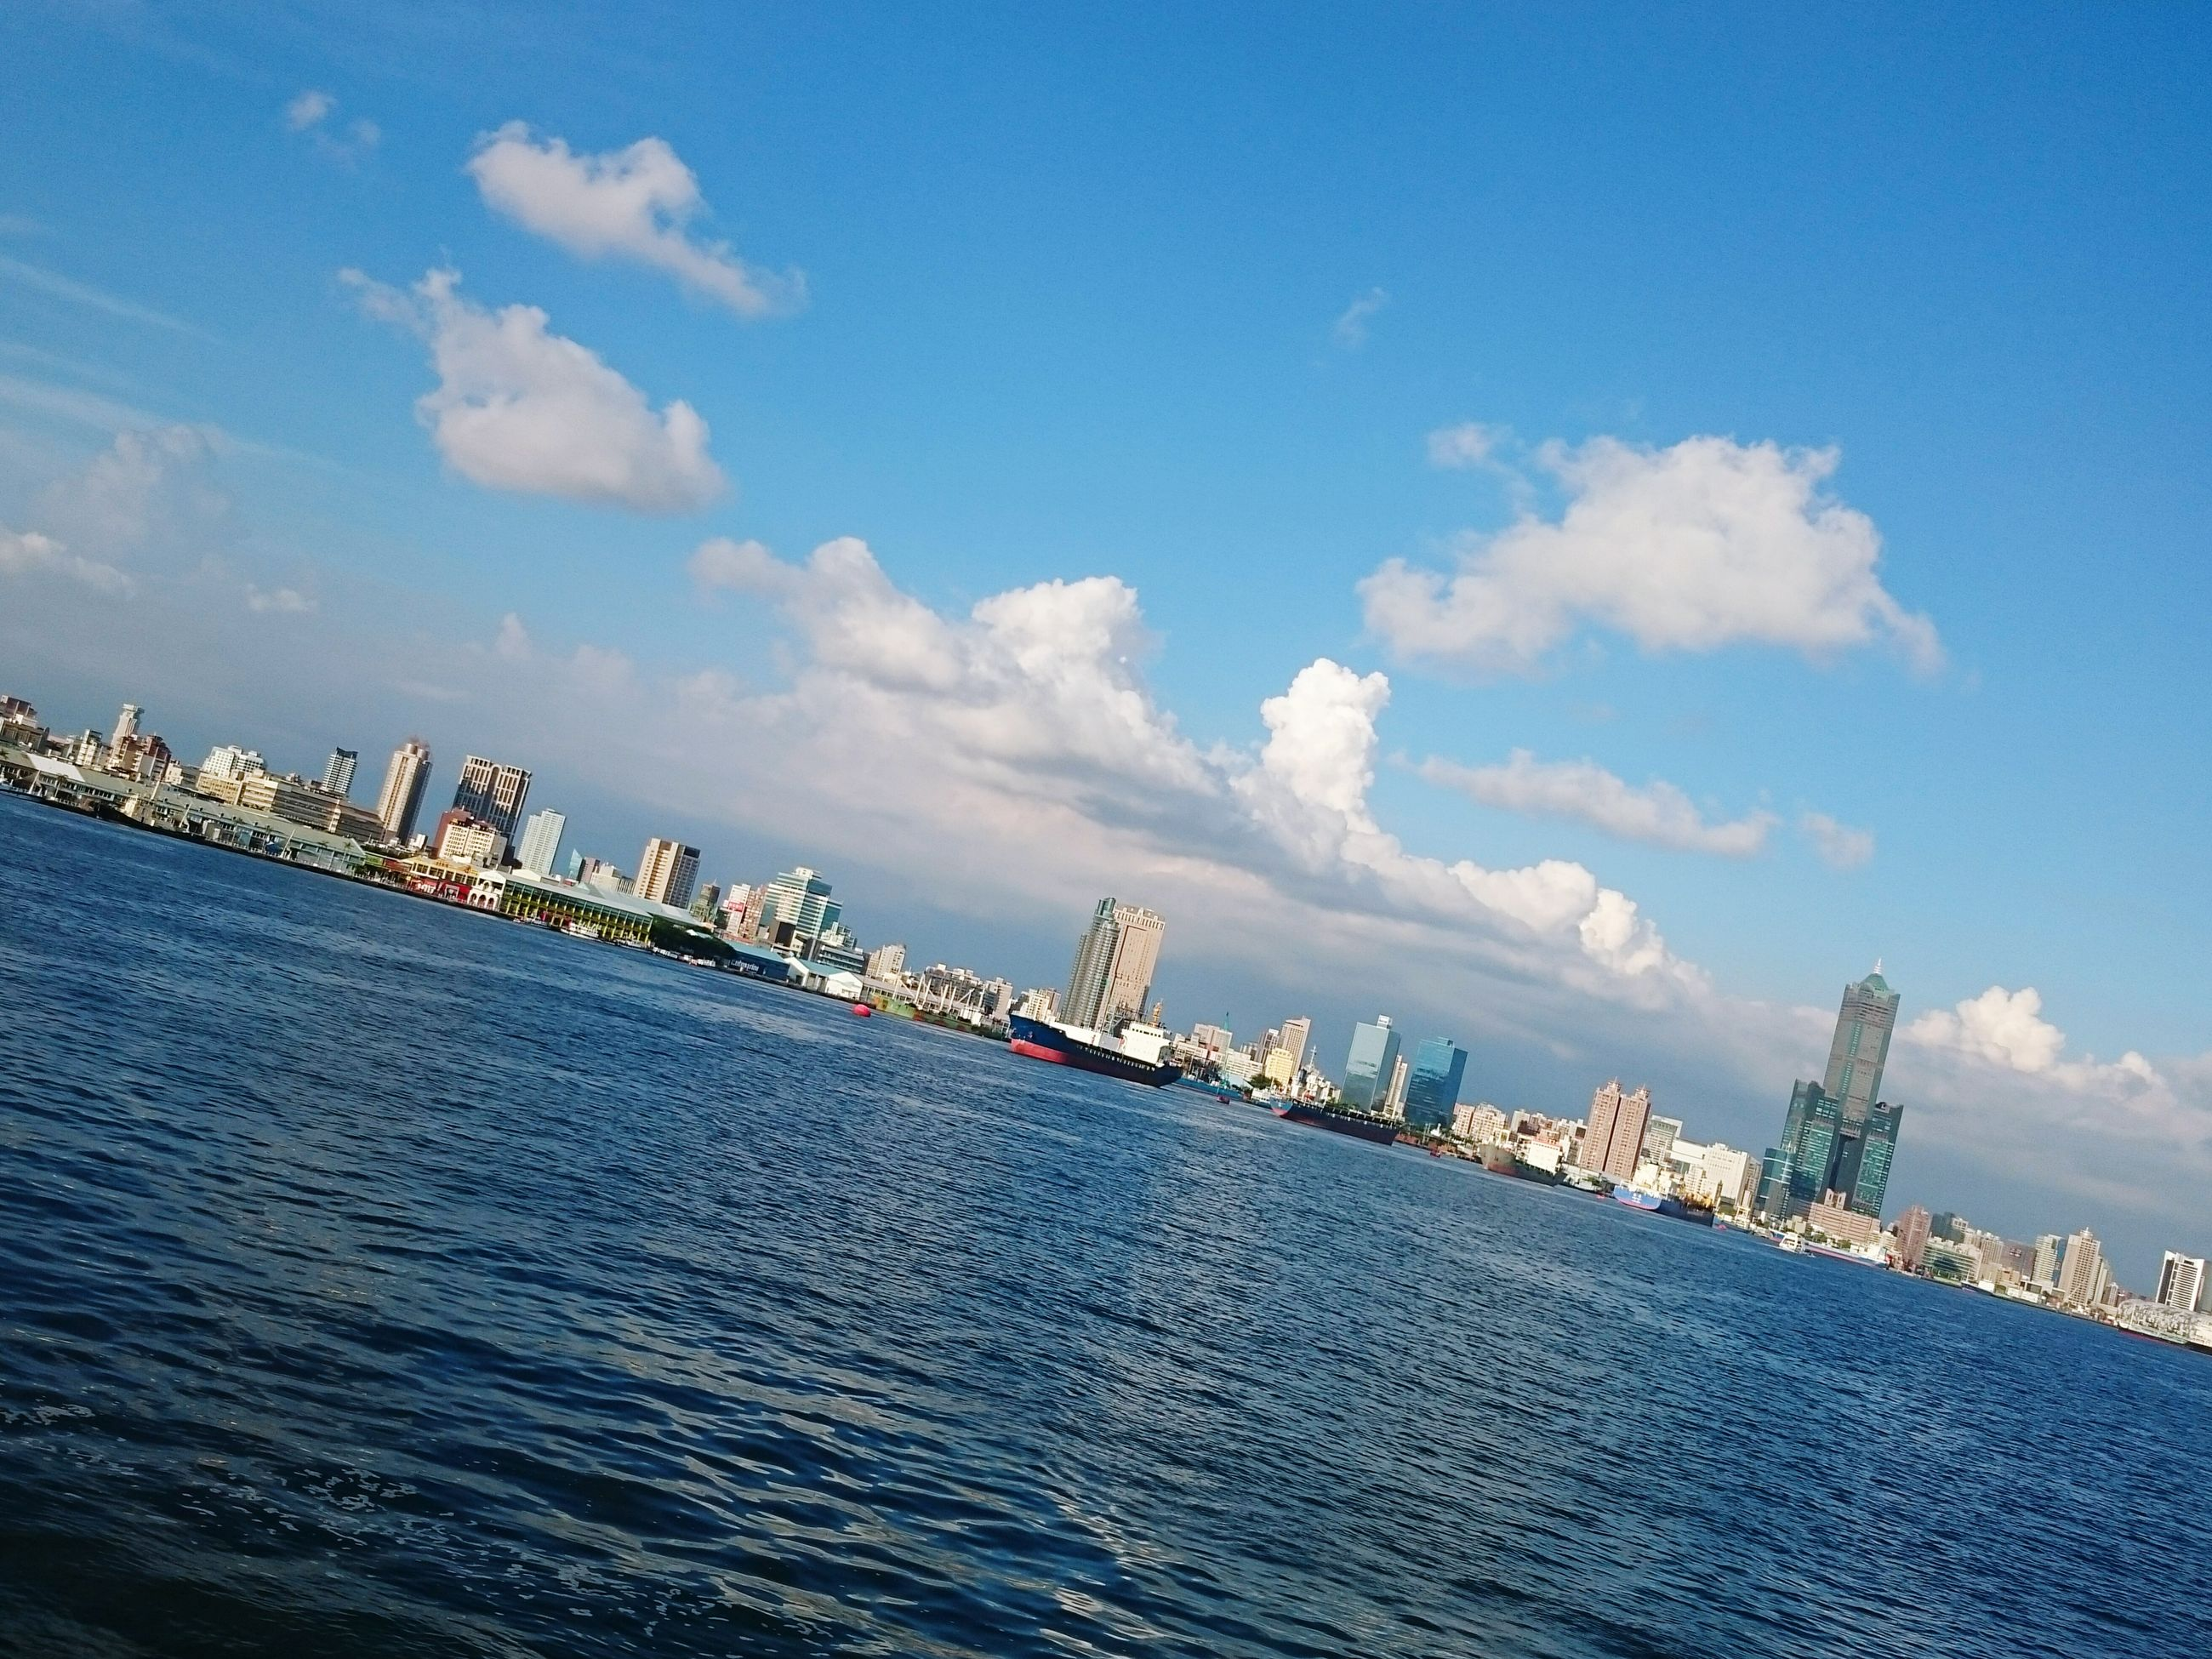 water, sea, blue, architecture, building exterior, built structure, sky, waterfront, cloud - sky, cloud, city, rippled, nautical vessel, day, outdoors, harbor, nature, scenics, cityscape, tranquility